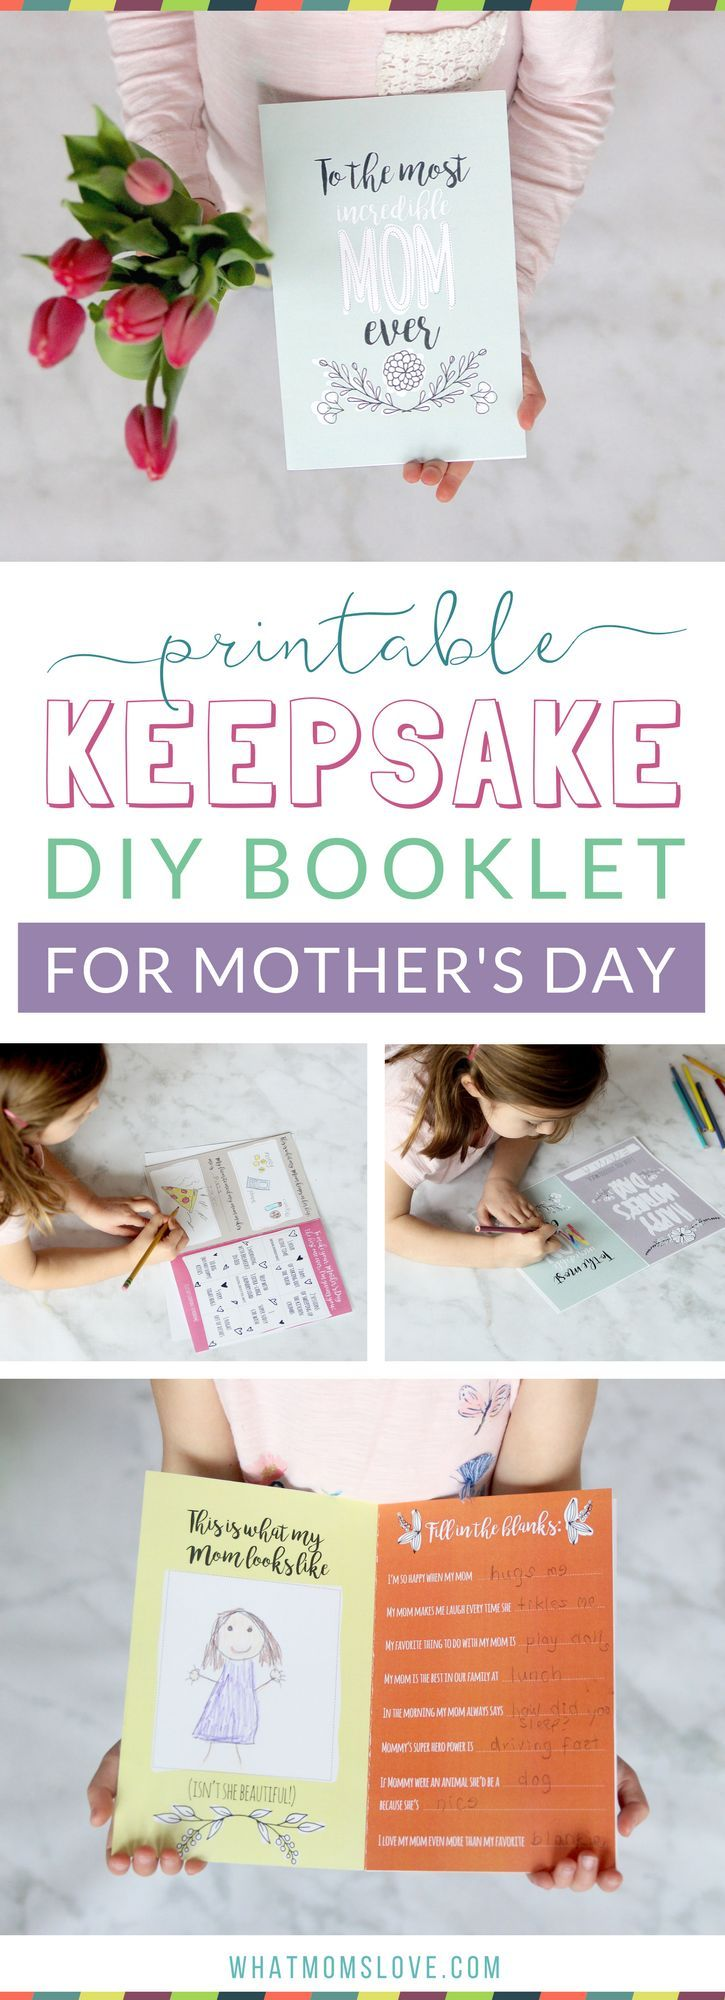 168 best Mother's Day Ideas images on Pinterest